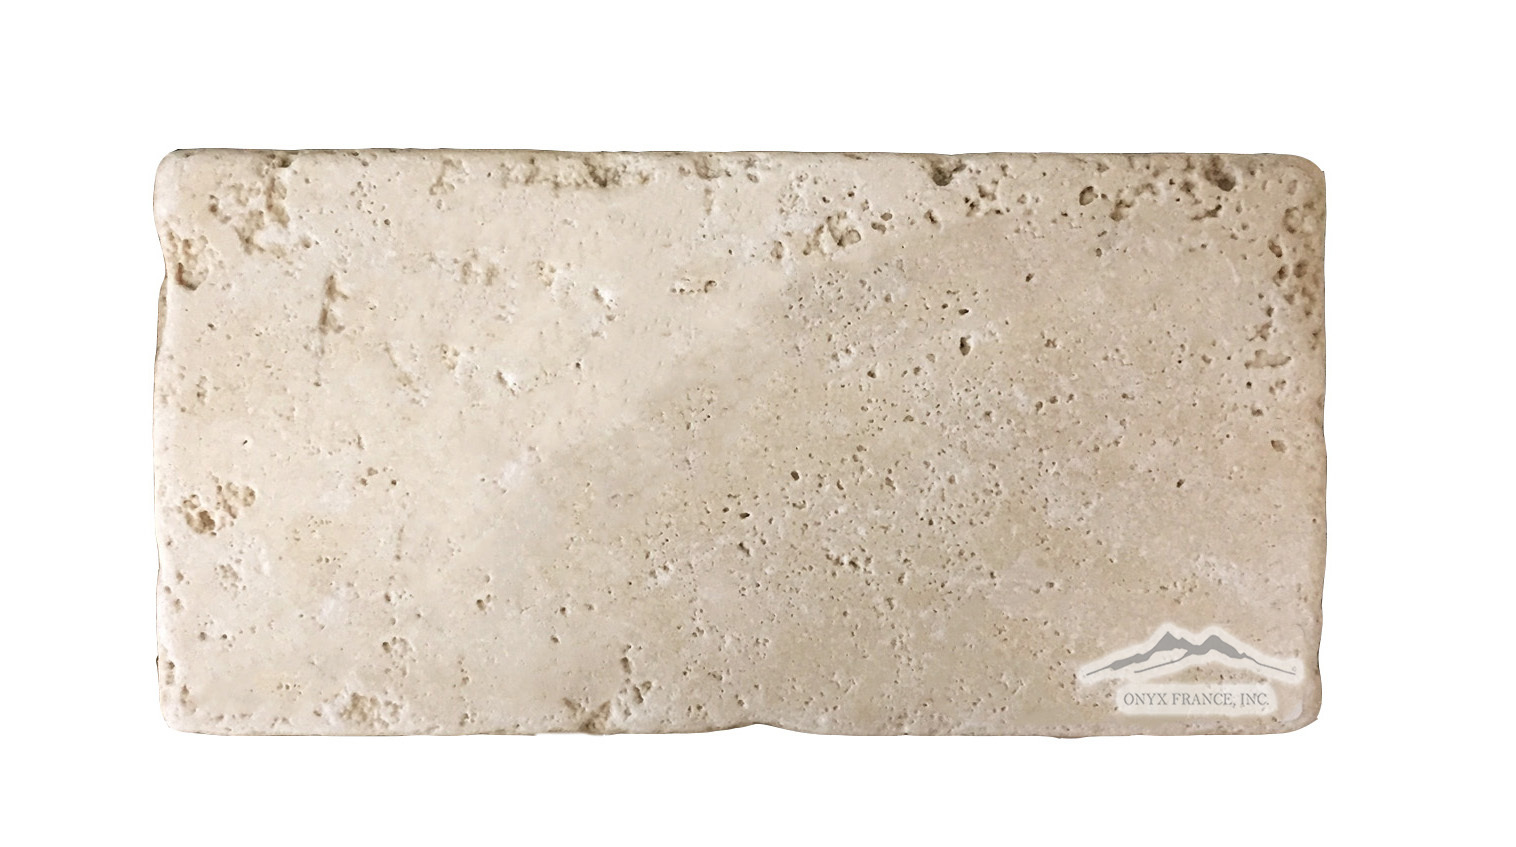 "Beige Antique Travertine 4"" x 8"" Tile Tumbled"